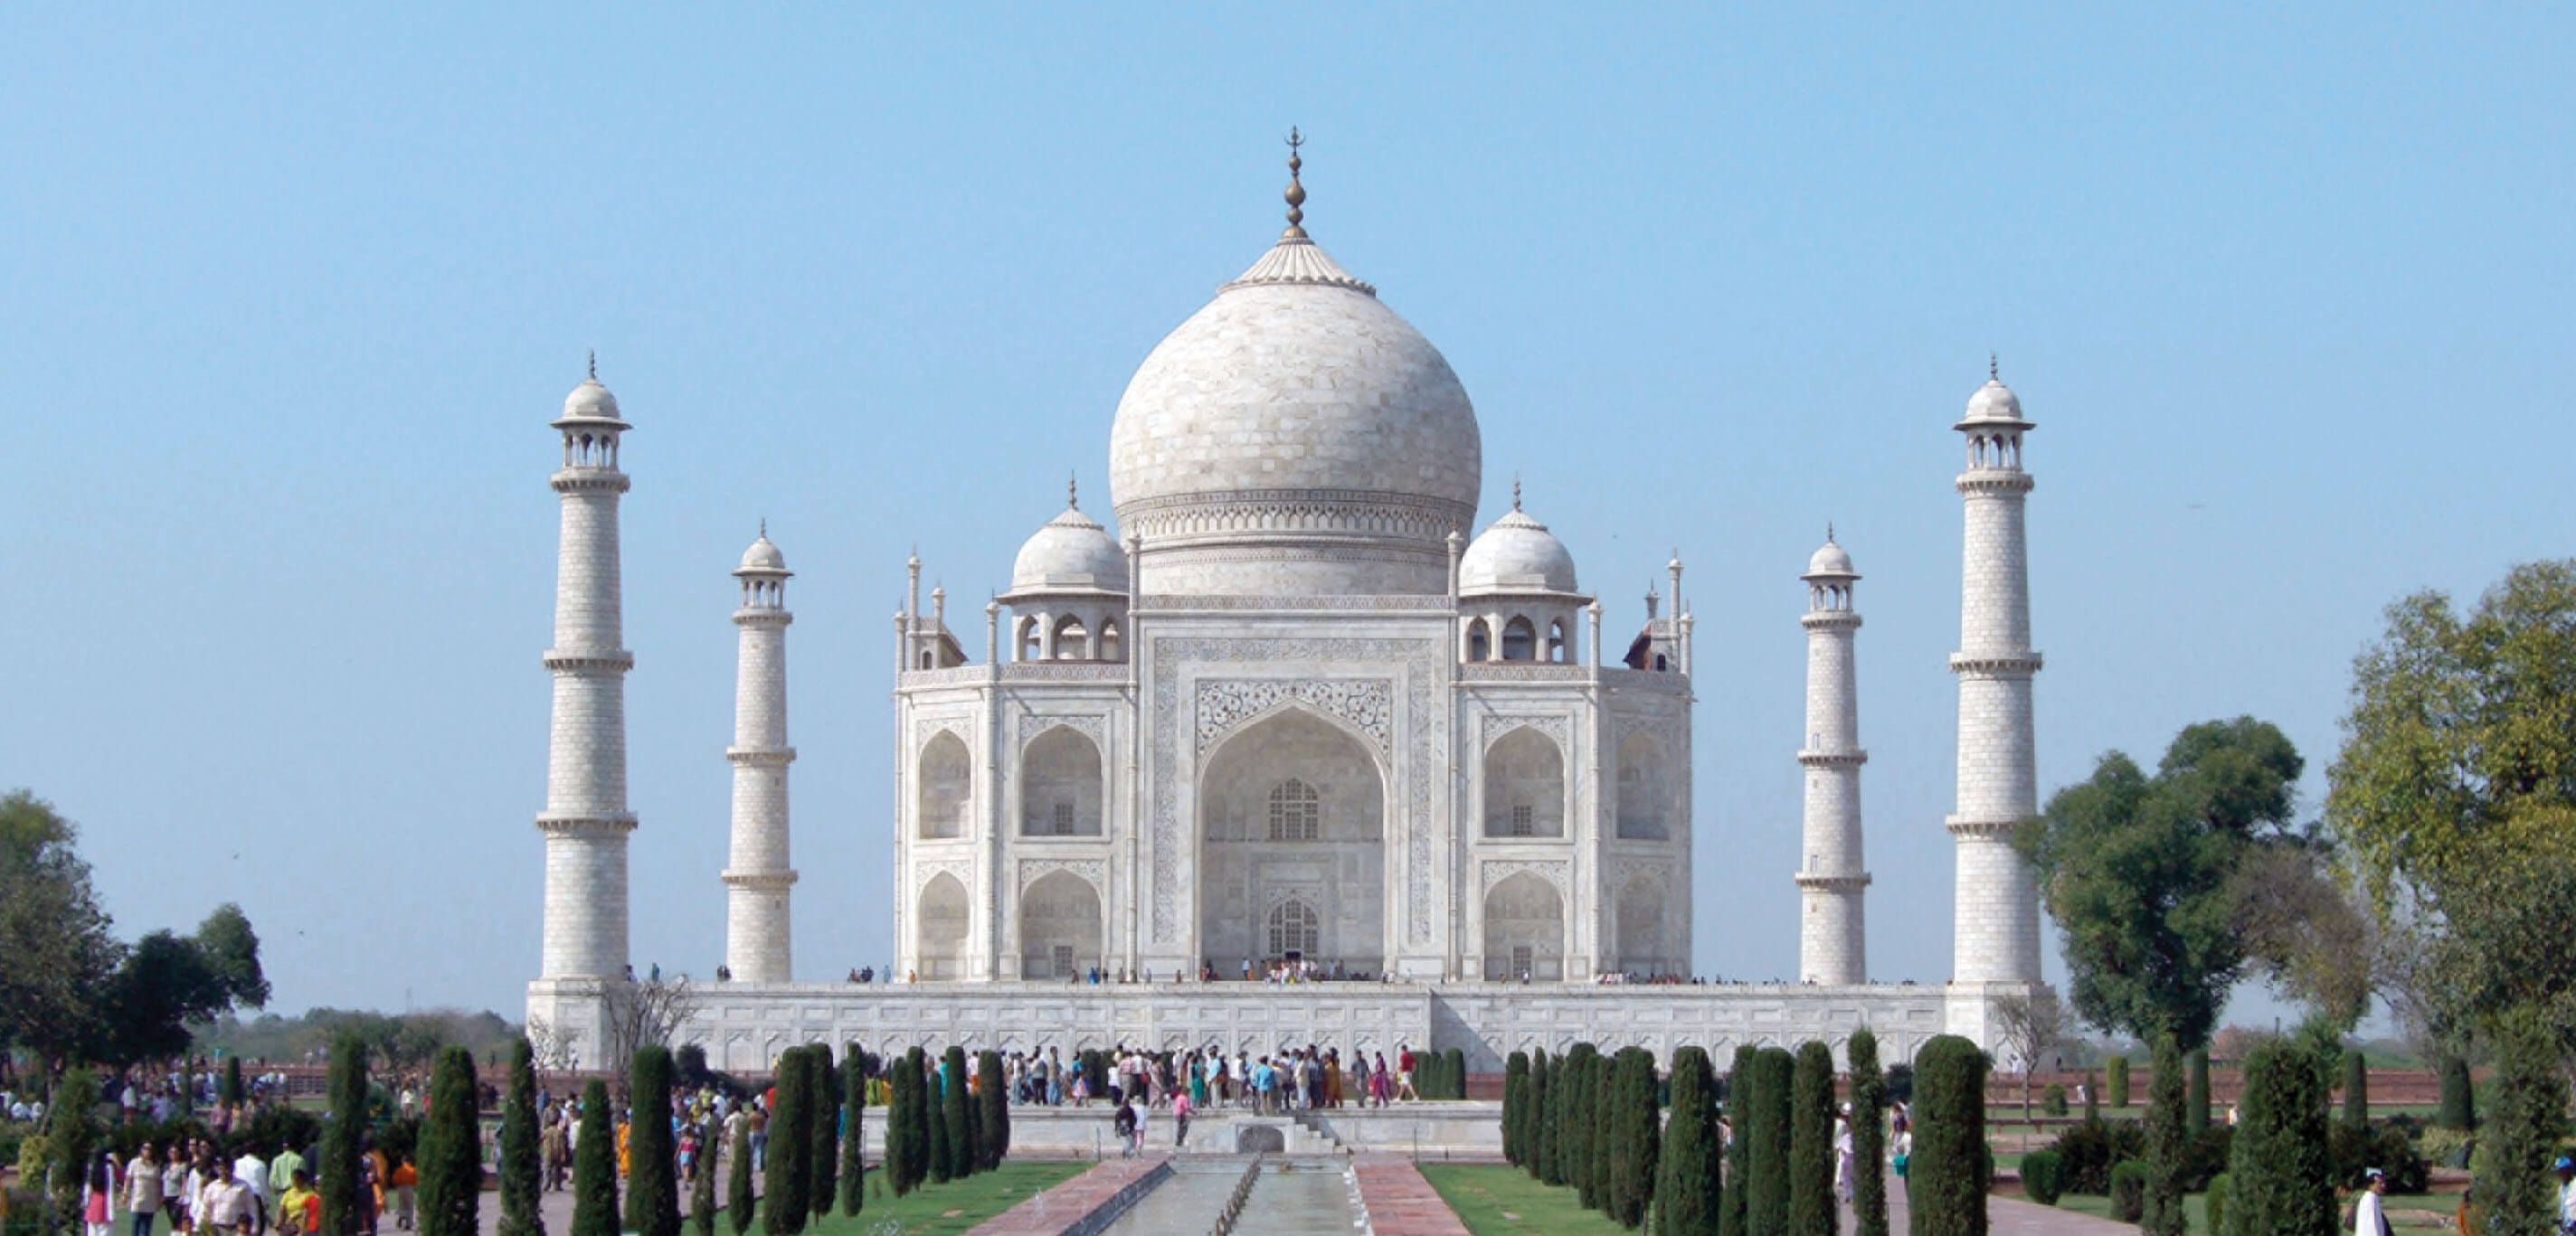 Discover Incredible India - Taj Mahal